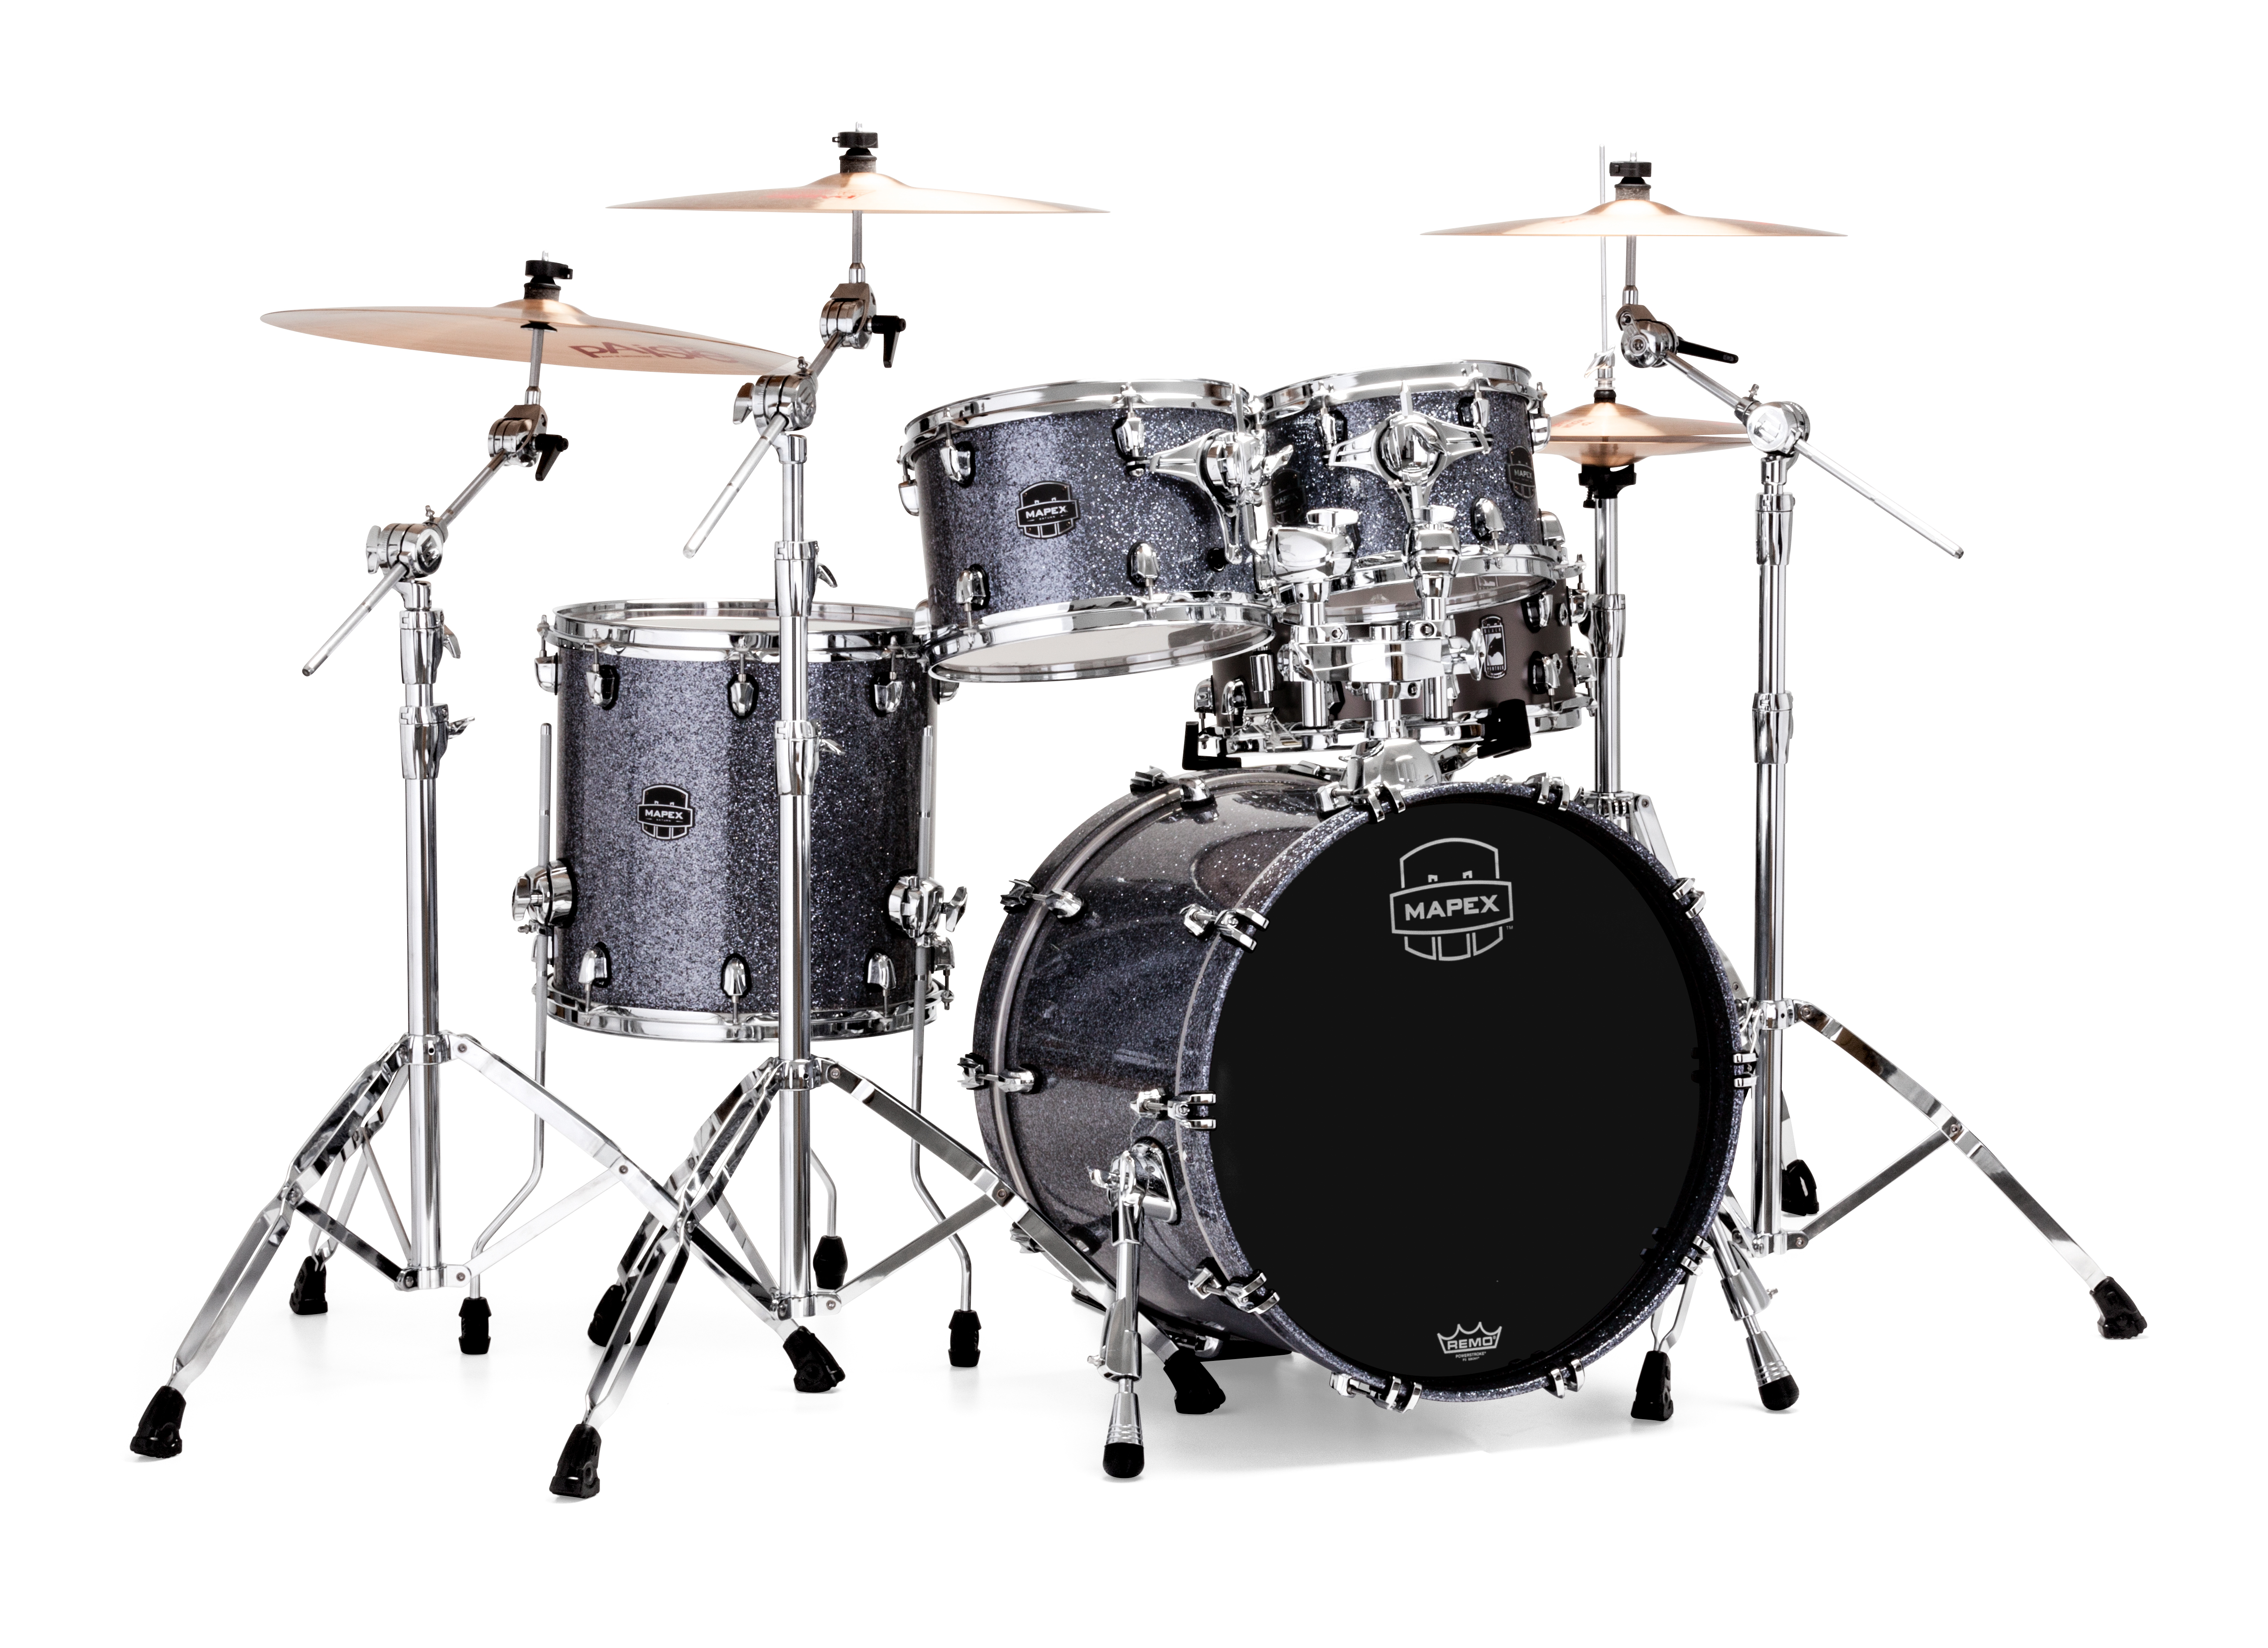 Mapex Saturn V MH Fusion 4-piece shell pack with SONIClear Edge - SV504XQL - Granite Sparkle